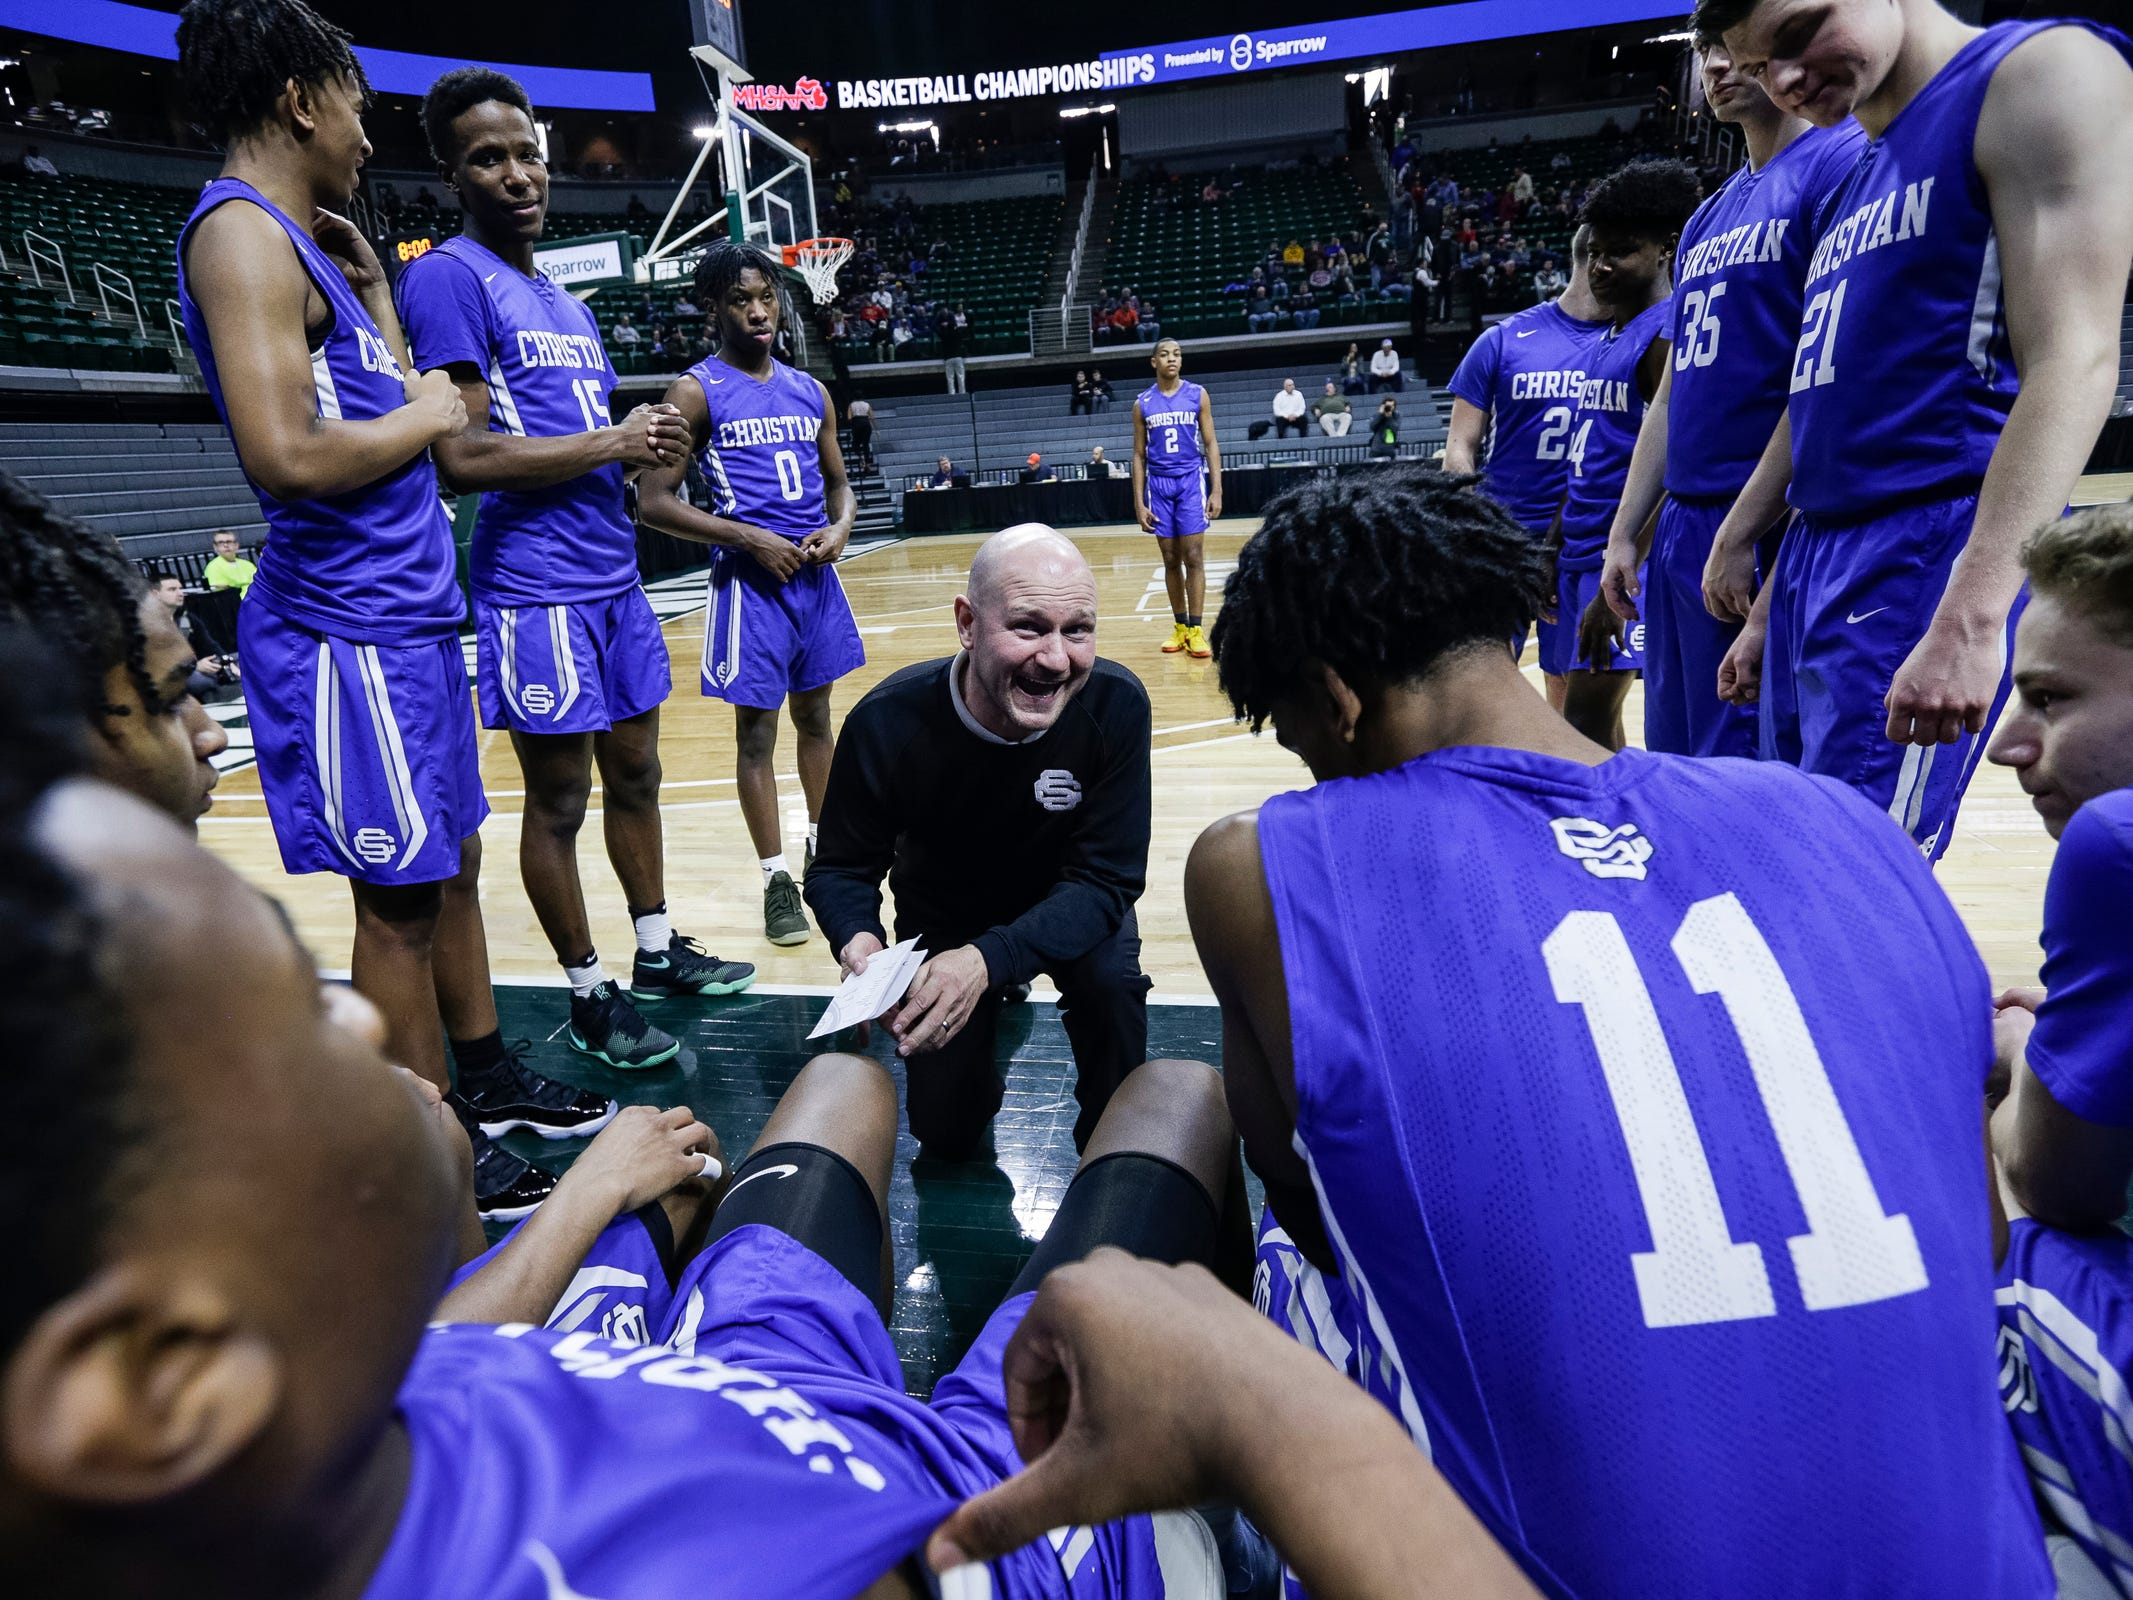 Southfield Christian head coach Josh Baker gives a speech to players before the MHSAA Division 4 semifinal against Dollar Bay at the Breslin Center in East Lansing, Thursday, March 14, 2019.